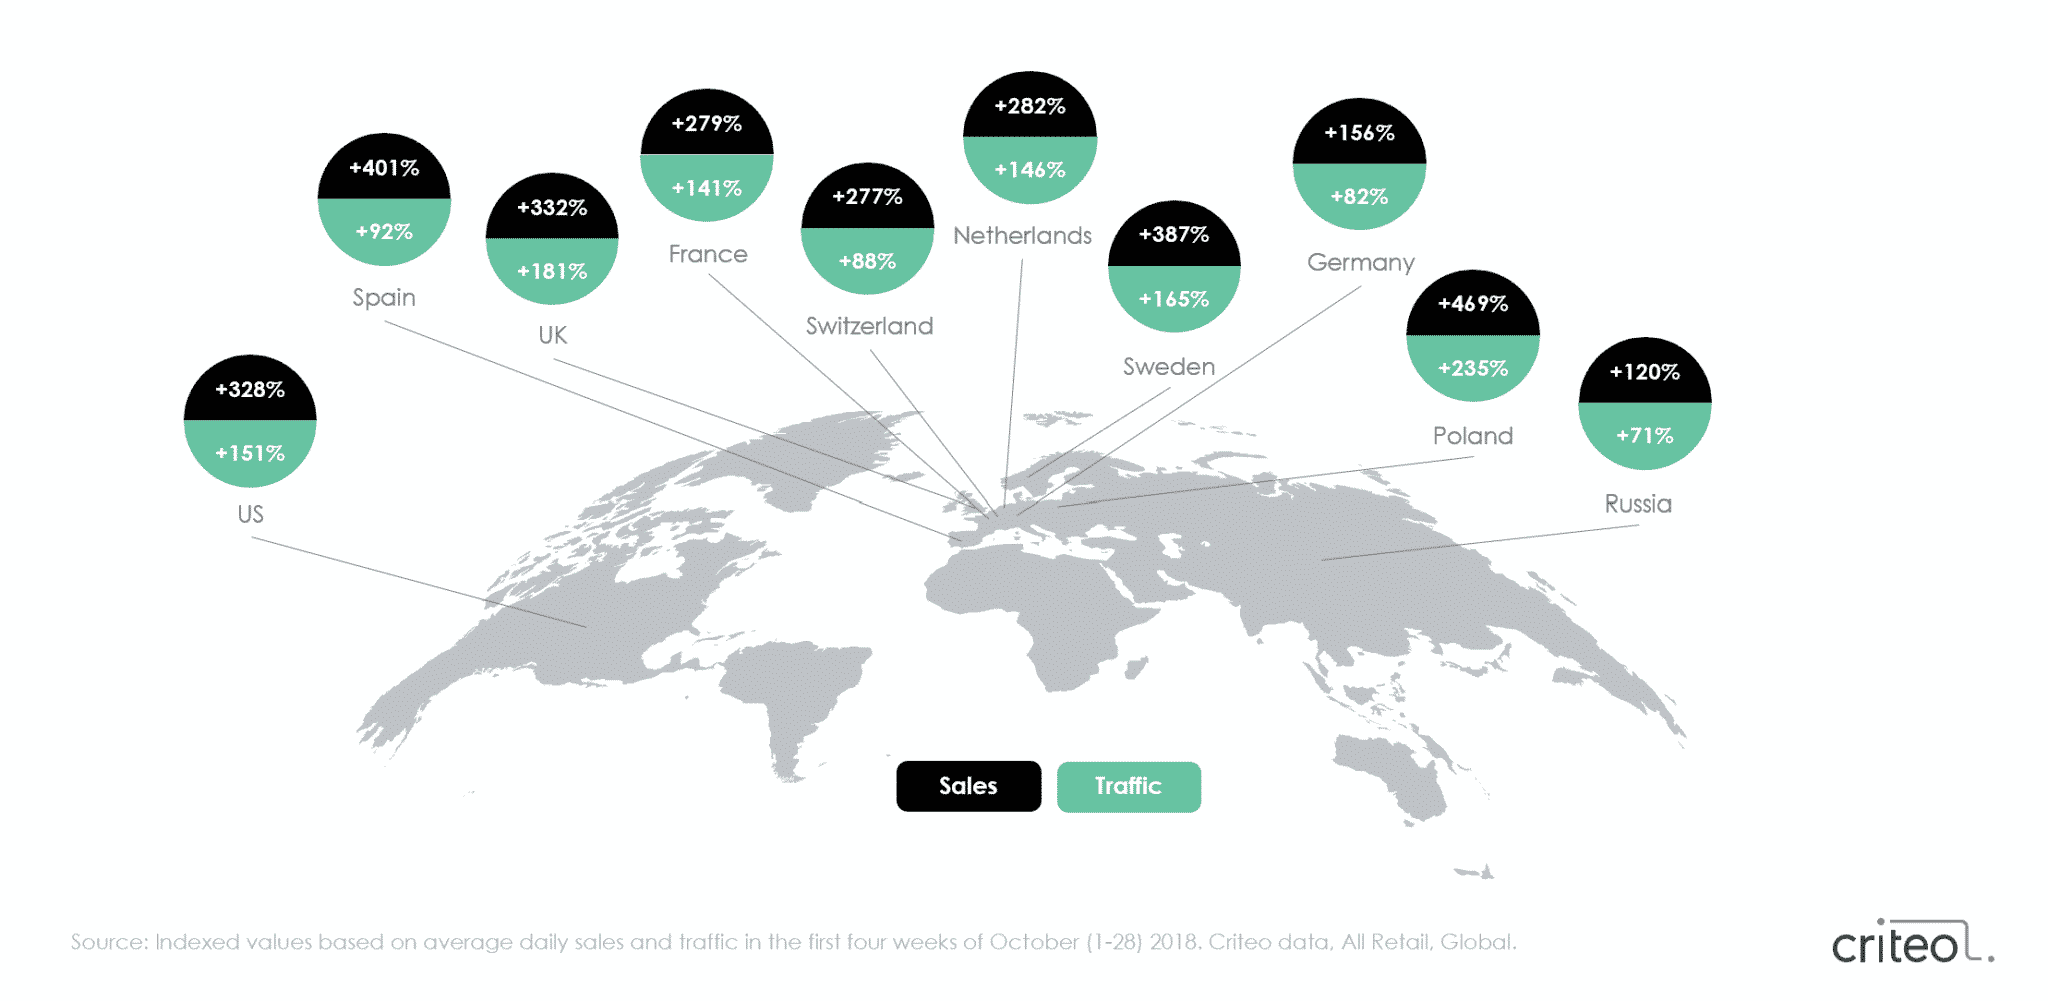 Map showing traffic and sales increases around the world on Black Friday 2018.